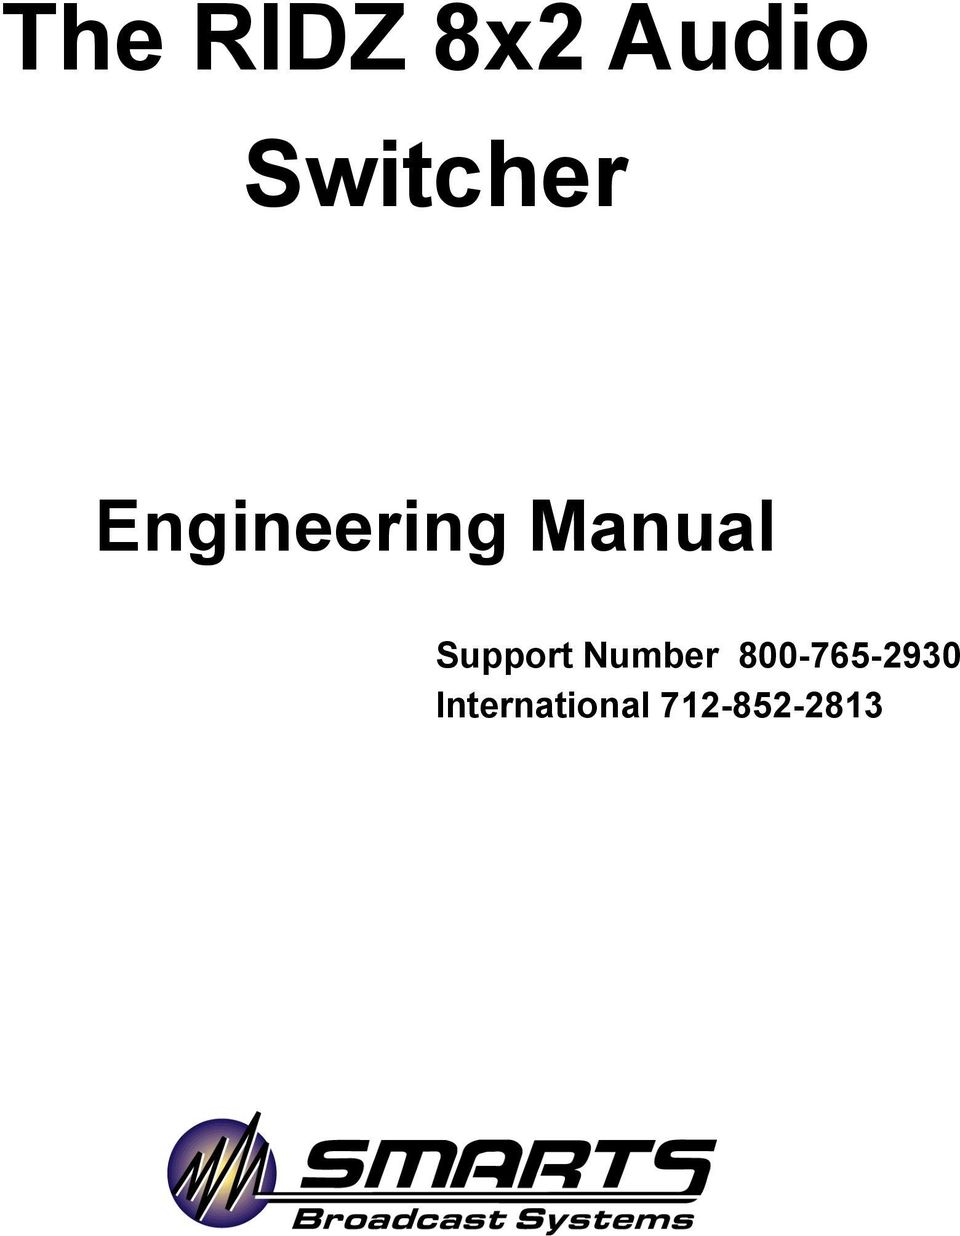 Manual Support Number